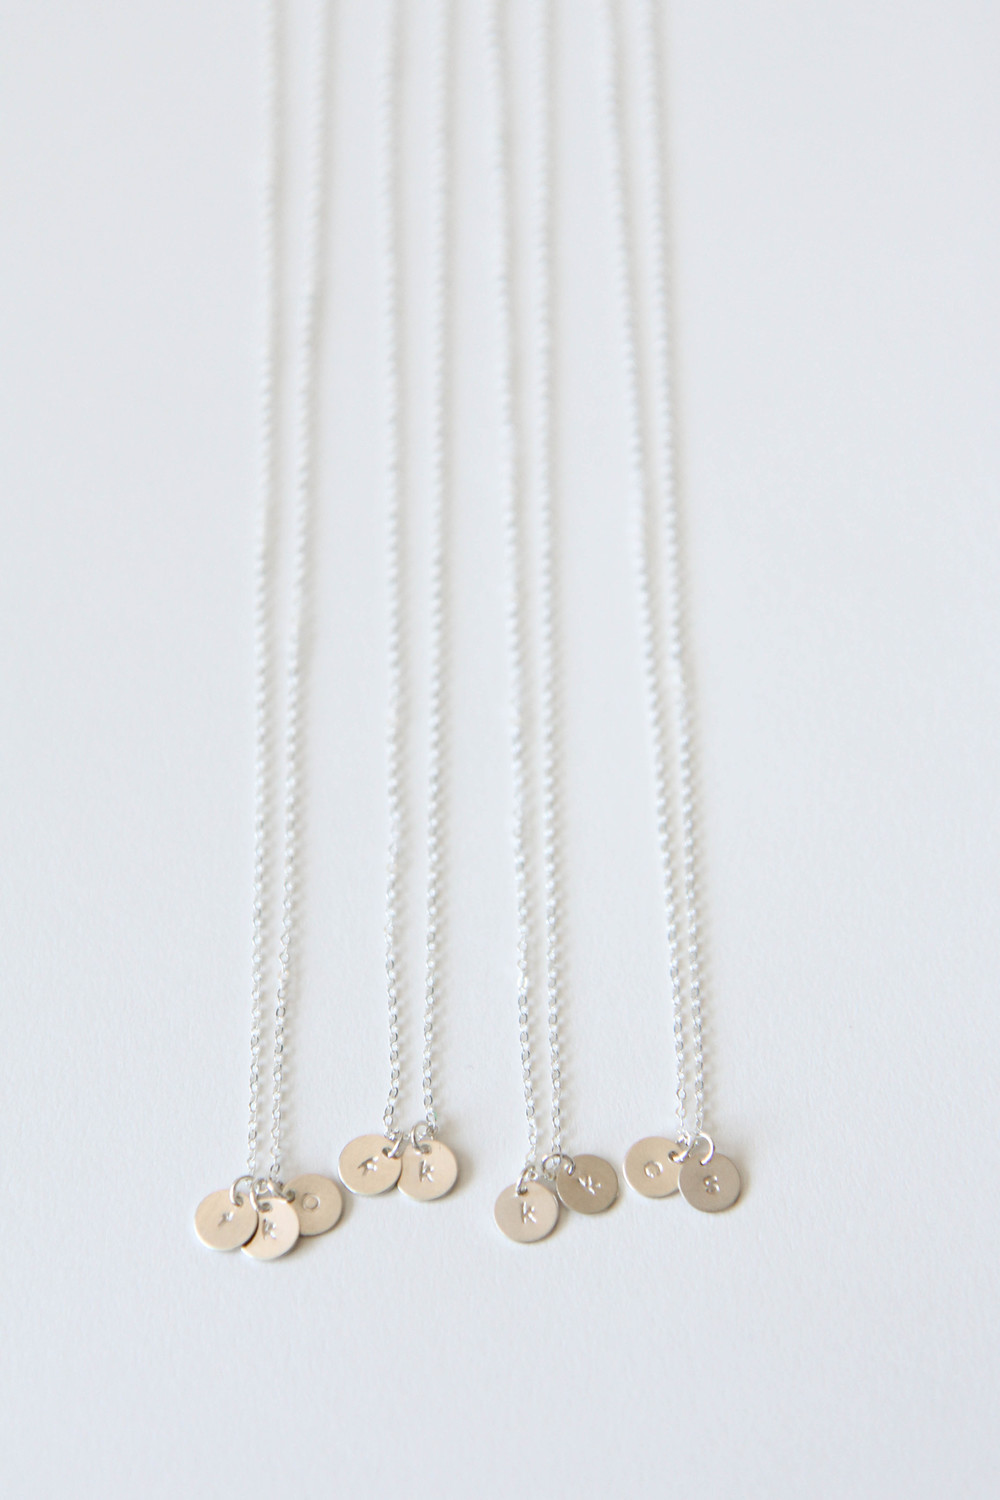 Hand-stamped initial necklaces for the bridal party